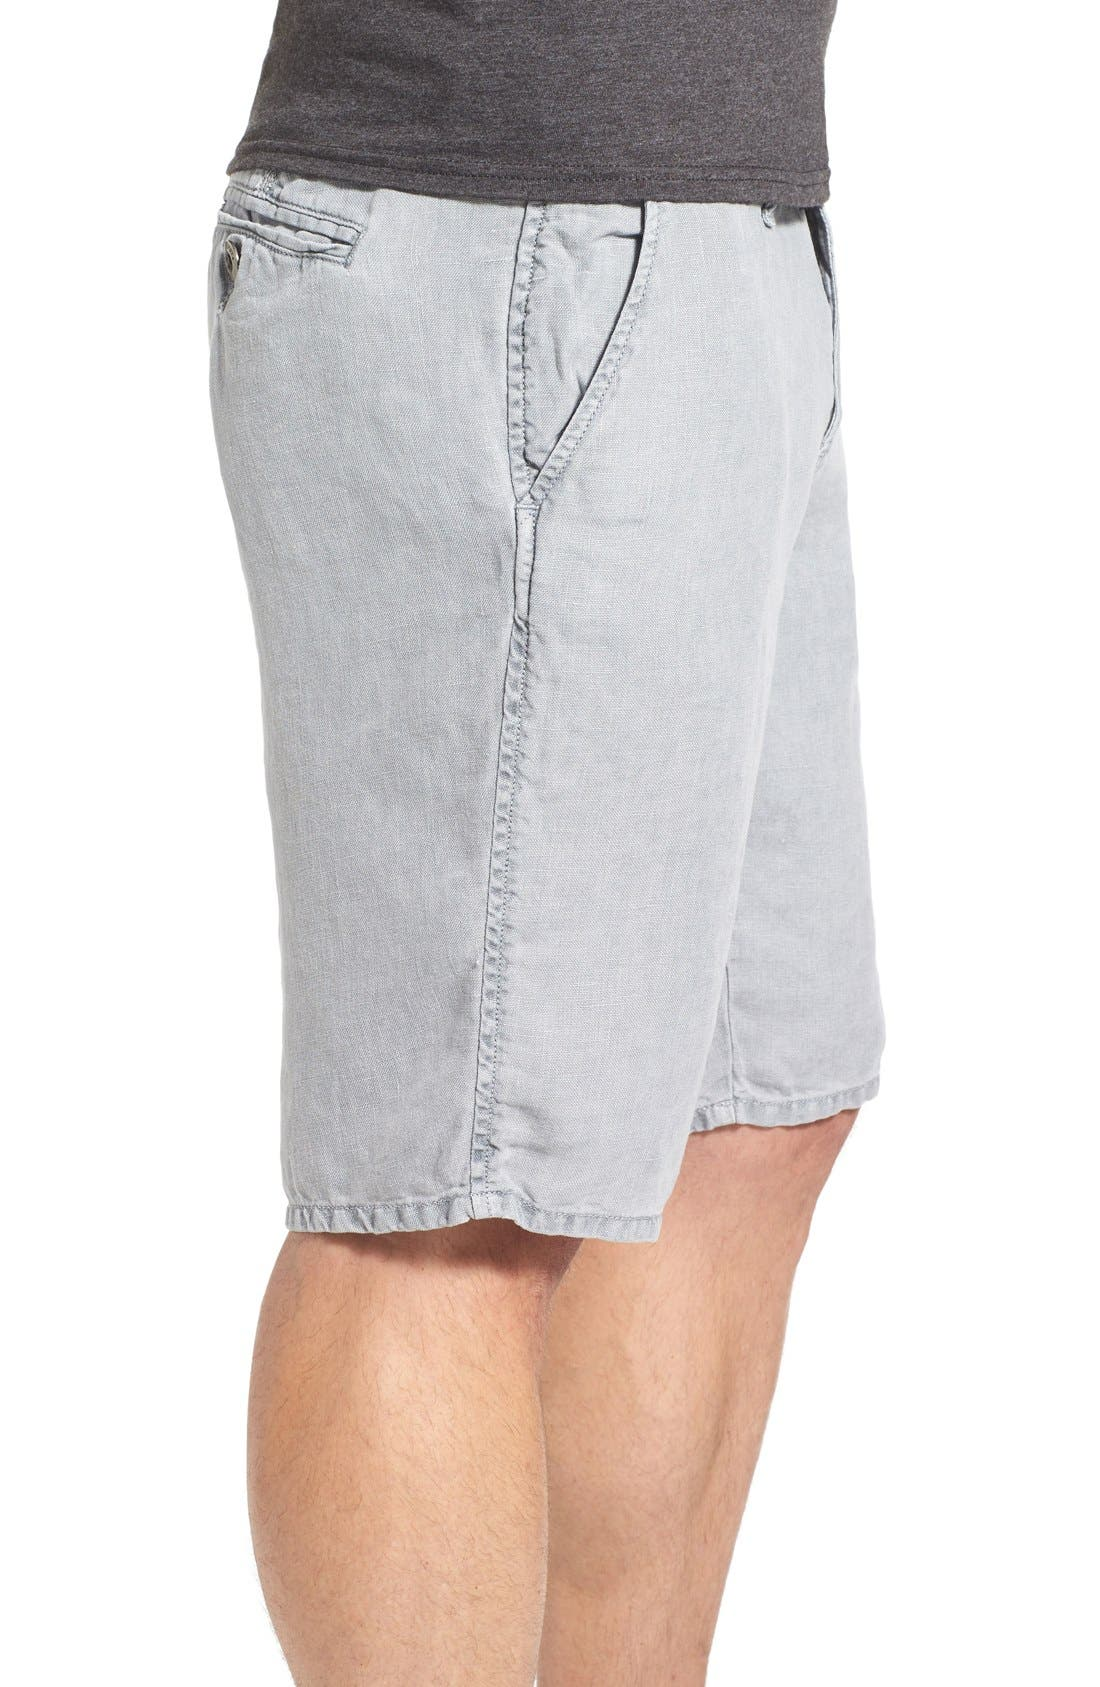 'Havana' Linen Shorts,                             Alternate thumbnail 3, color,                             Lite Grey